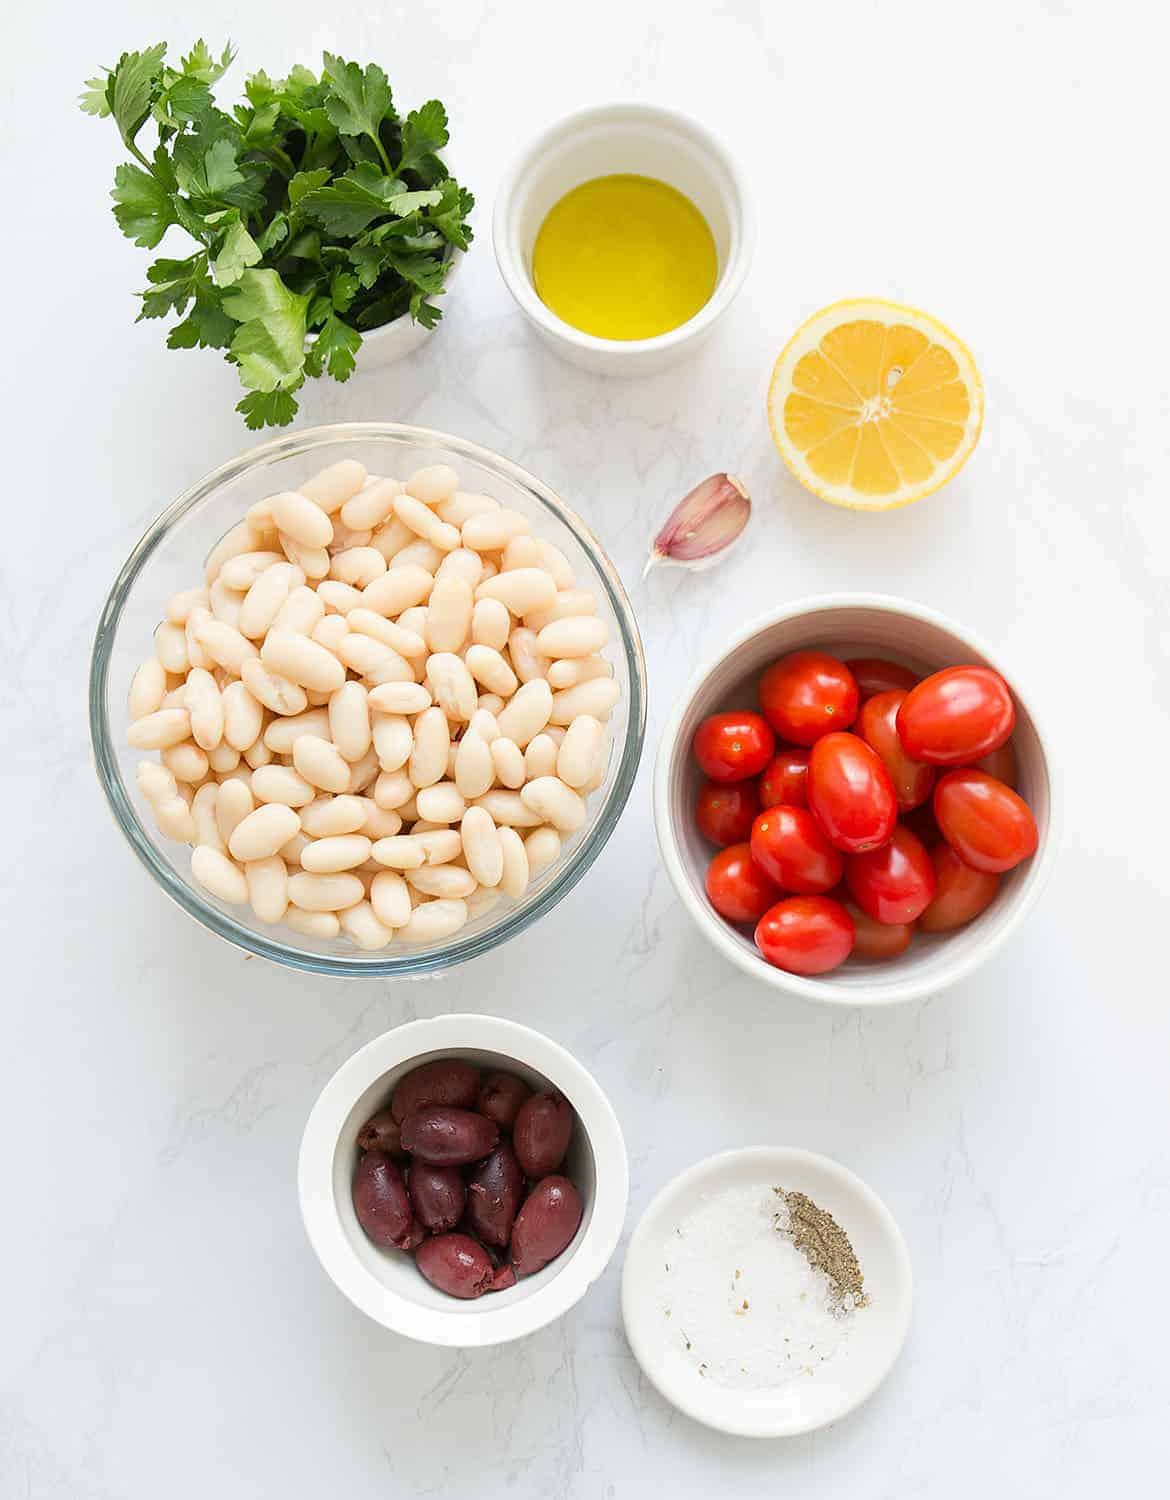 The ingredients for this cannellini bean salad arranged on a white marble surface.